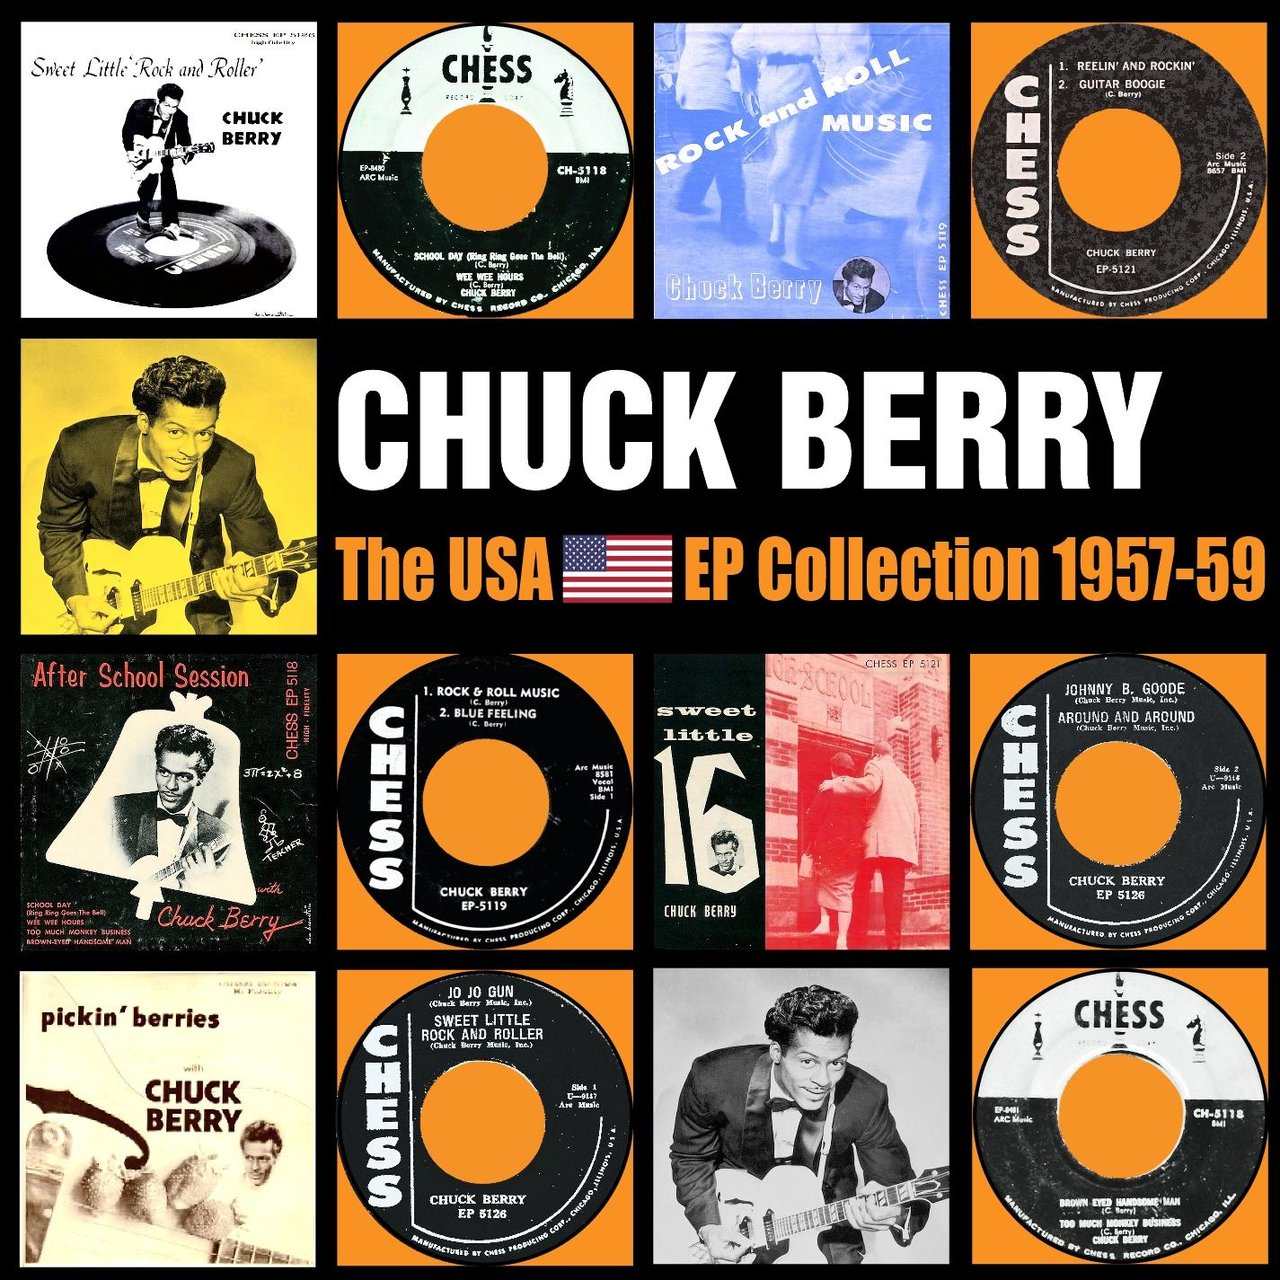 The USA EP Collection 1957 - 1959